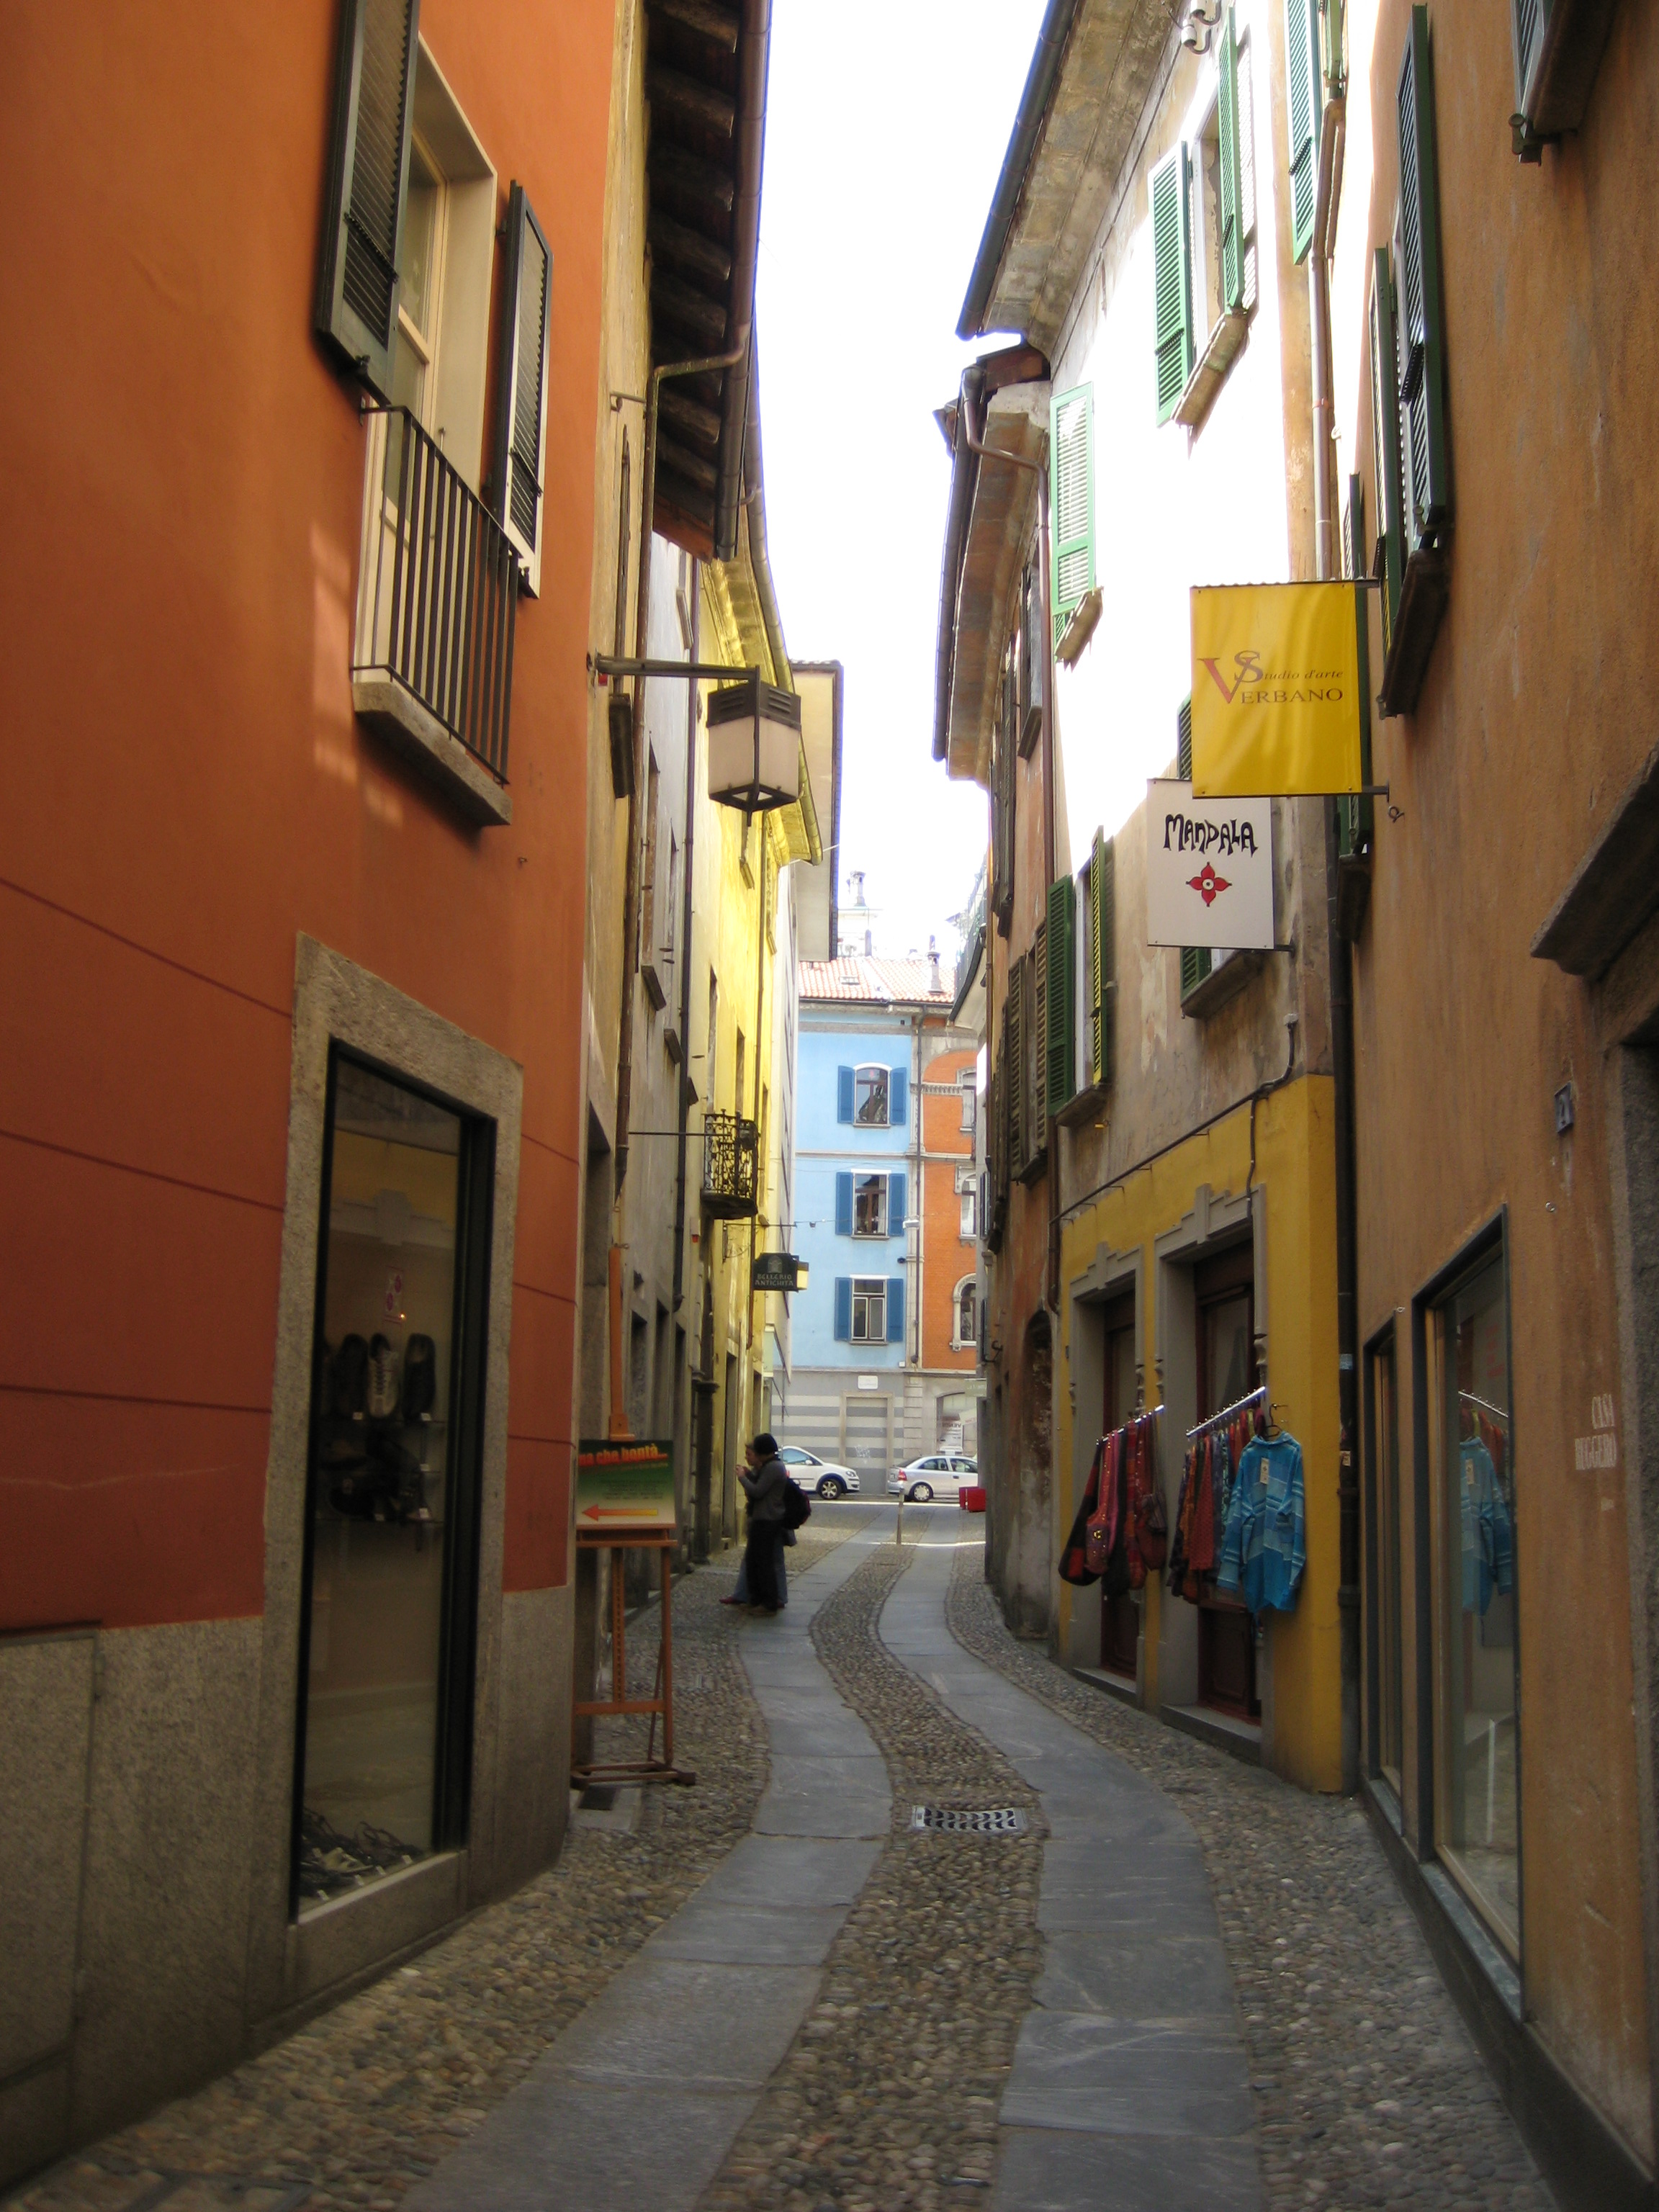 Street in Locarno with Karla's gallery